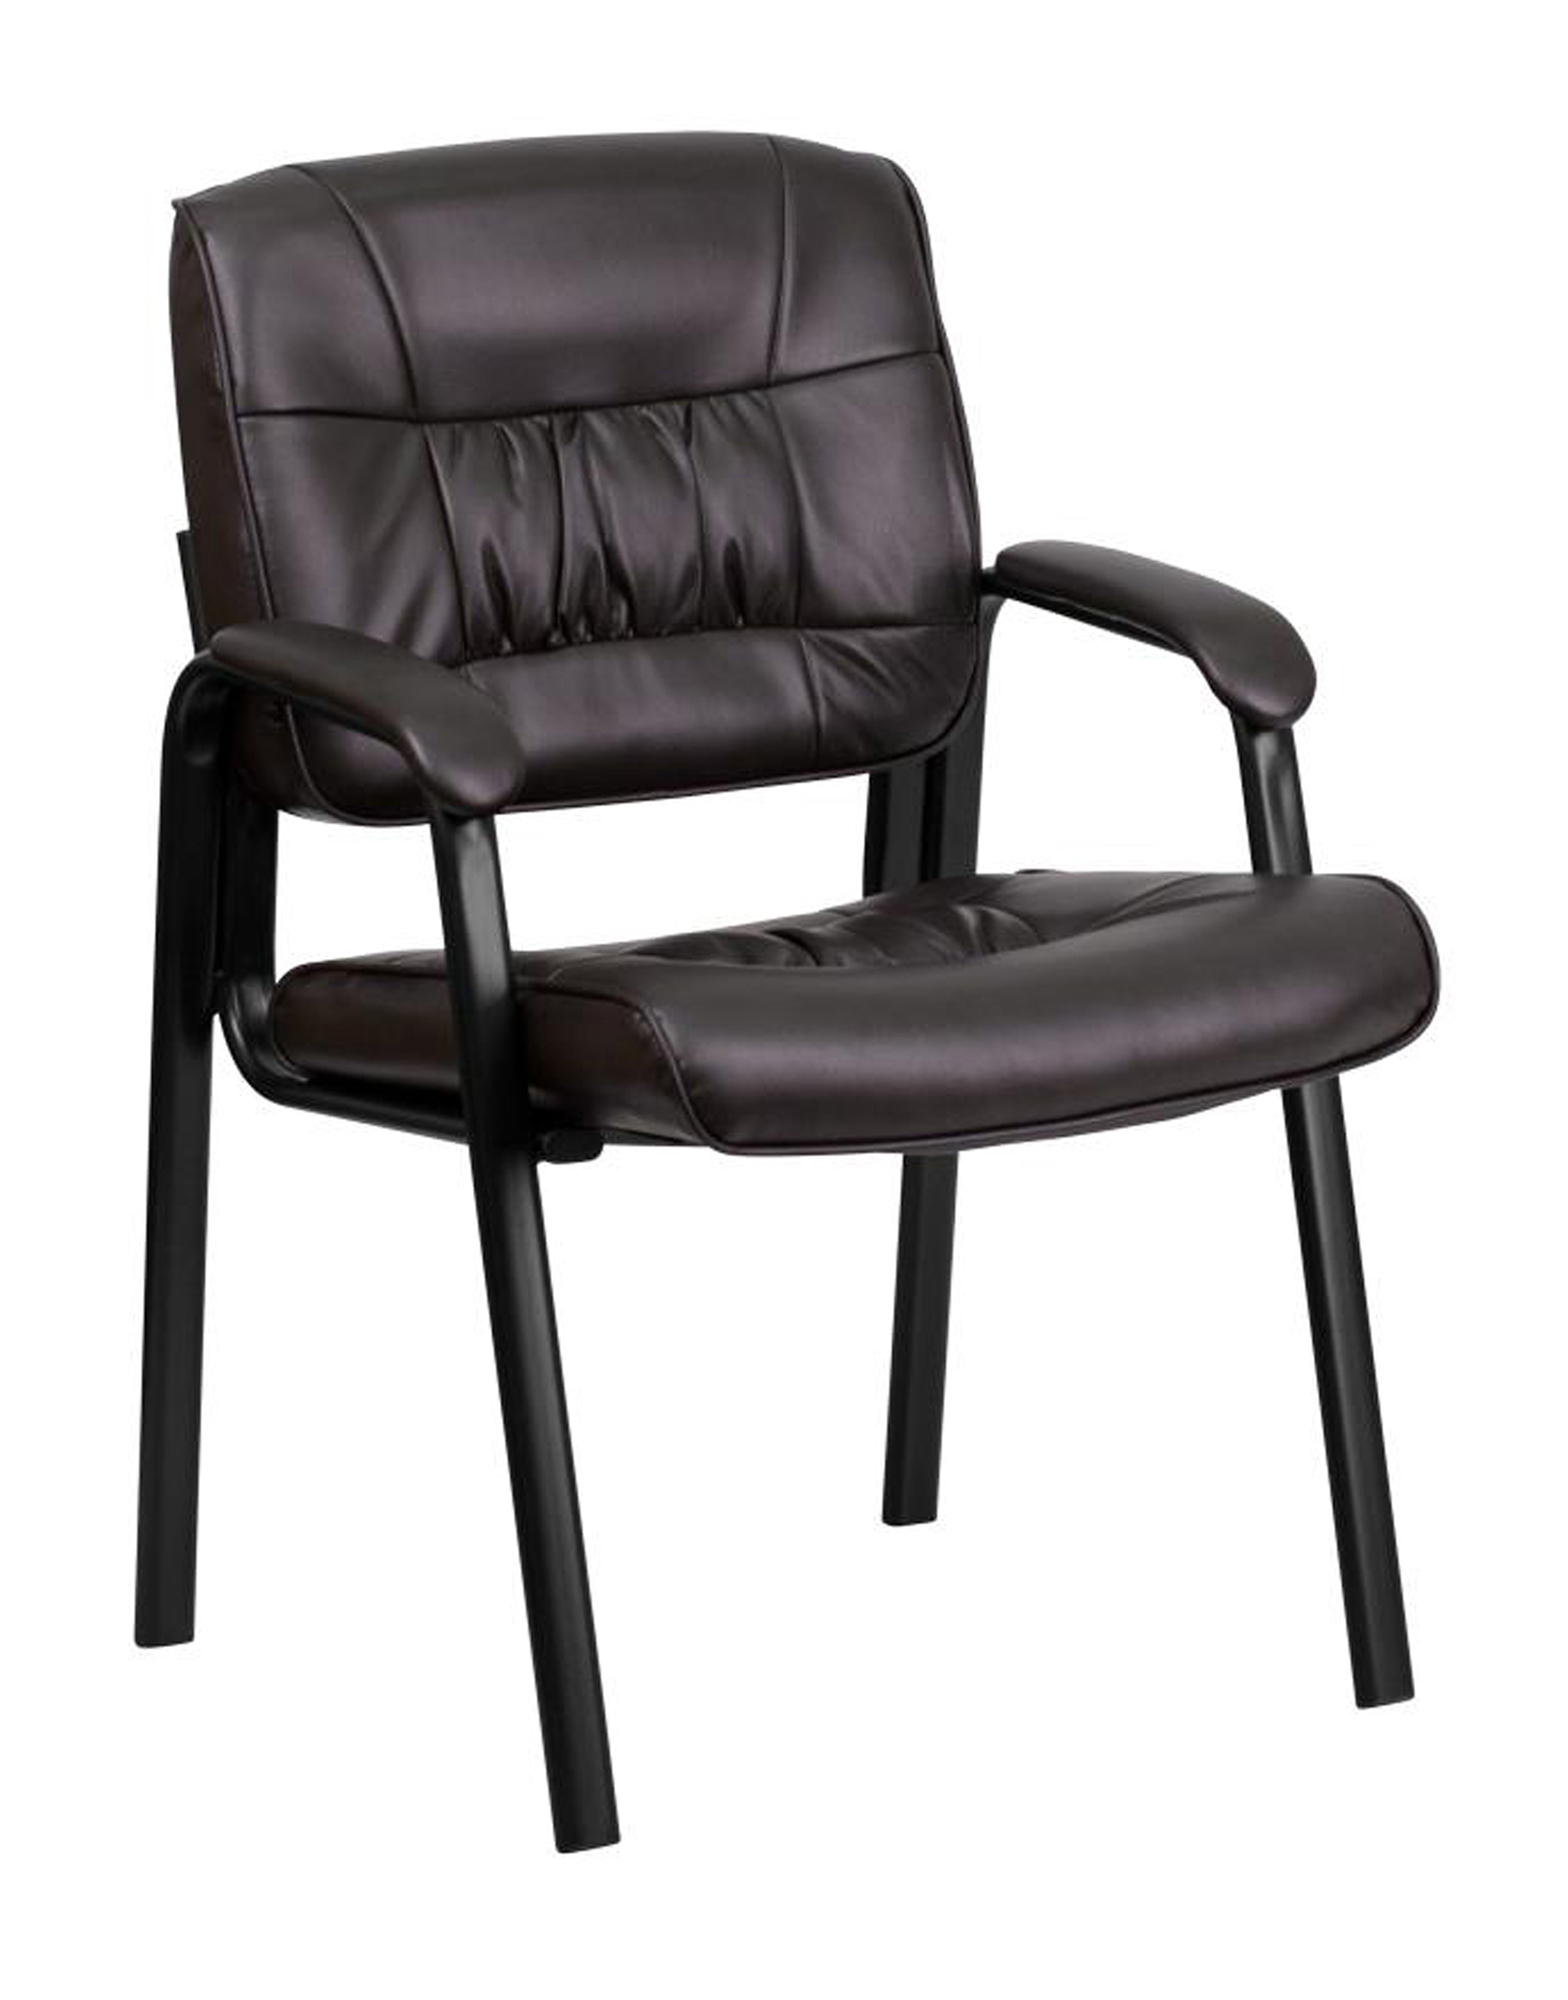 Offex Brown Leather Guest Reception Chair with Black Frame Finish [BT-1404-BN-GG]